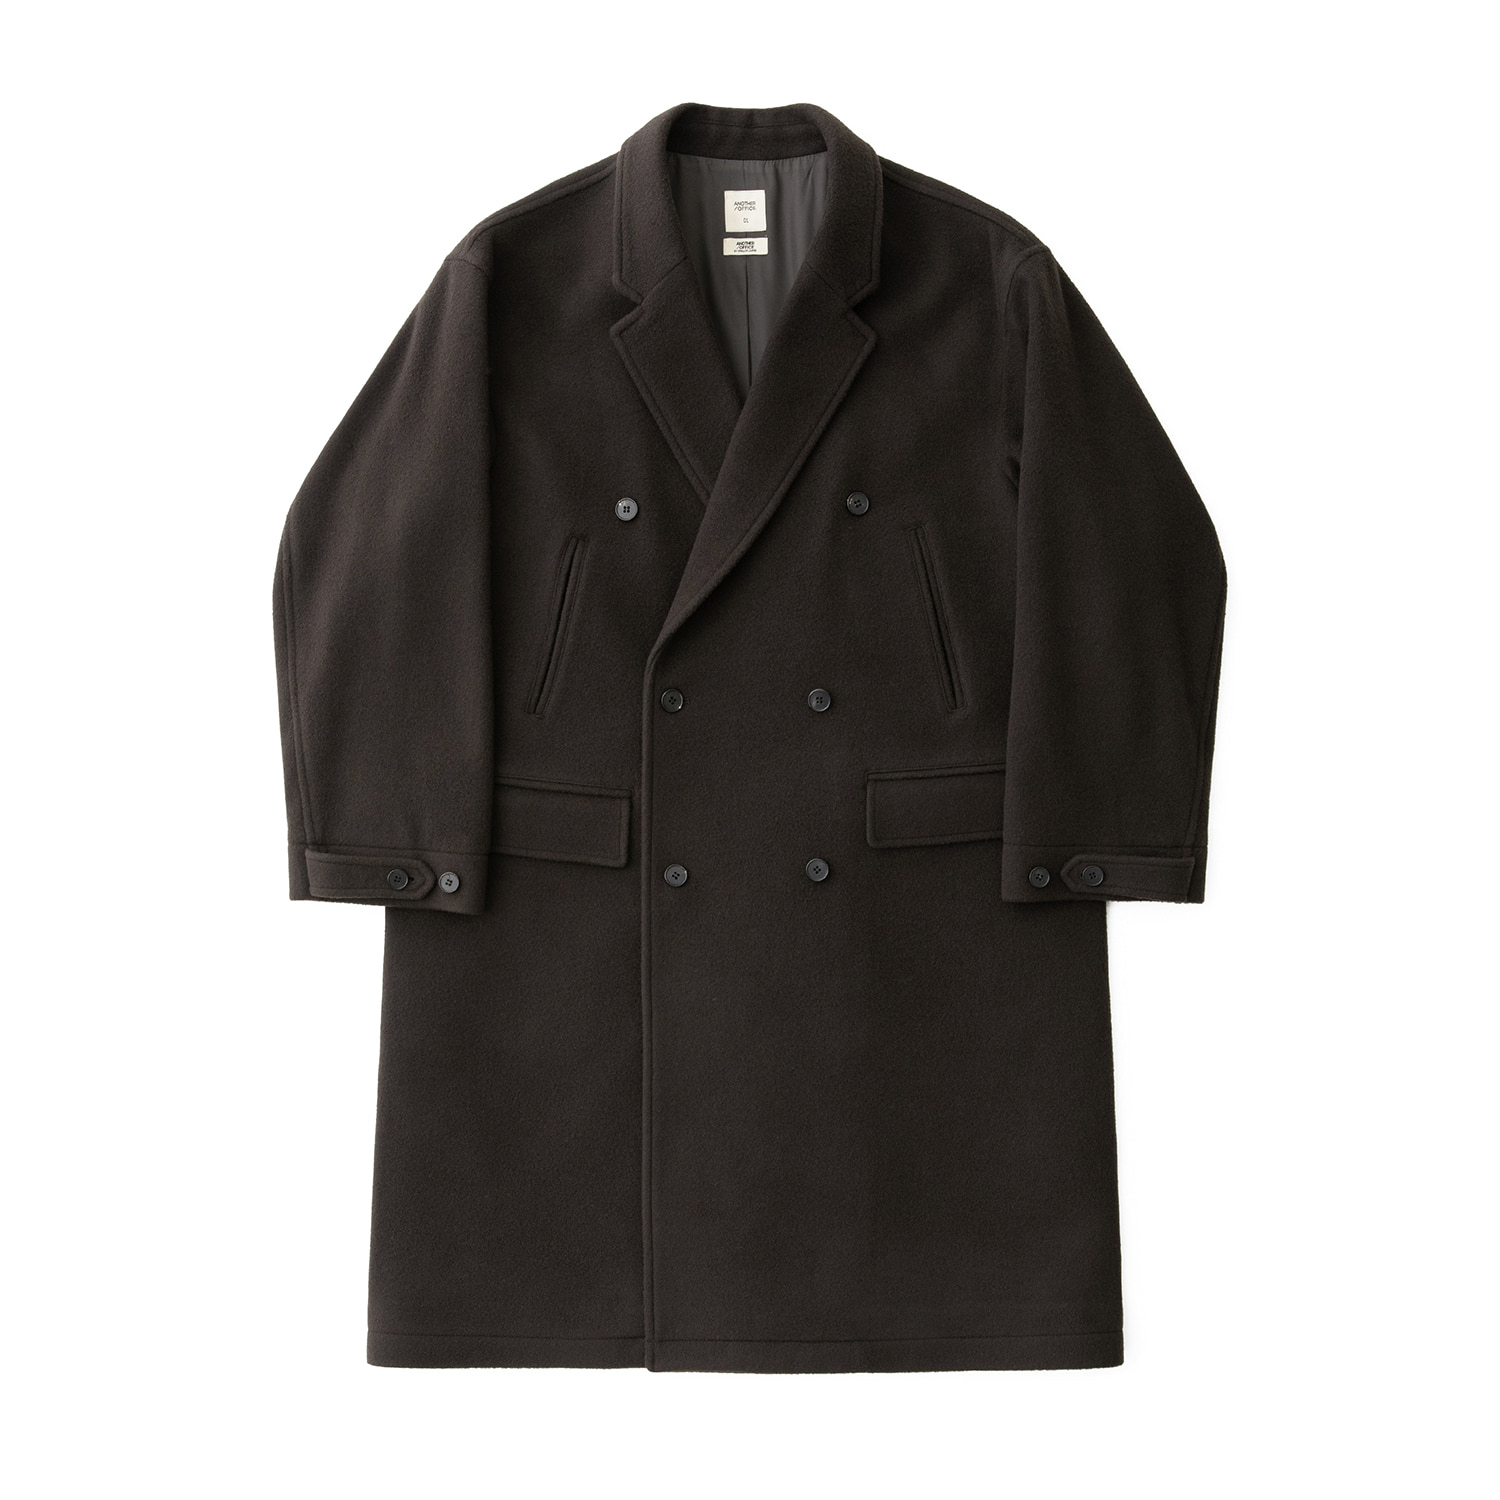 Plenty Mosser Double Coat (Charcoal Brown)